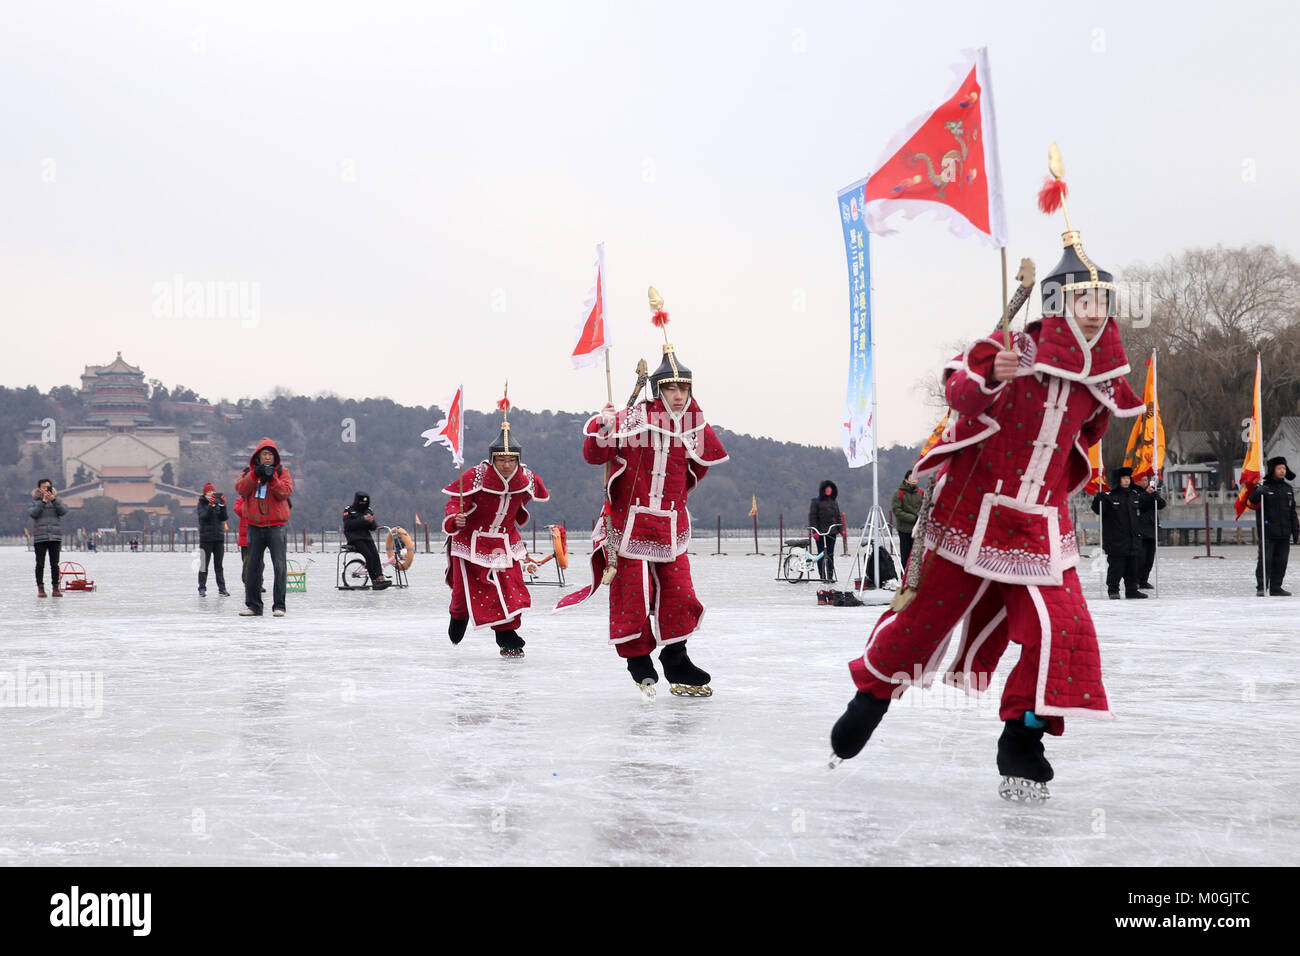 Beijing, China. 21st Jan, 2018. The ice and snow festival is held at Summer Palace in Beijing, January 21st, 2018. Credit: SIPA Asia/ZUMA Wire/Alamy Live News Stock Photo